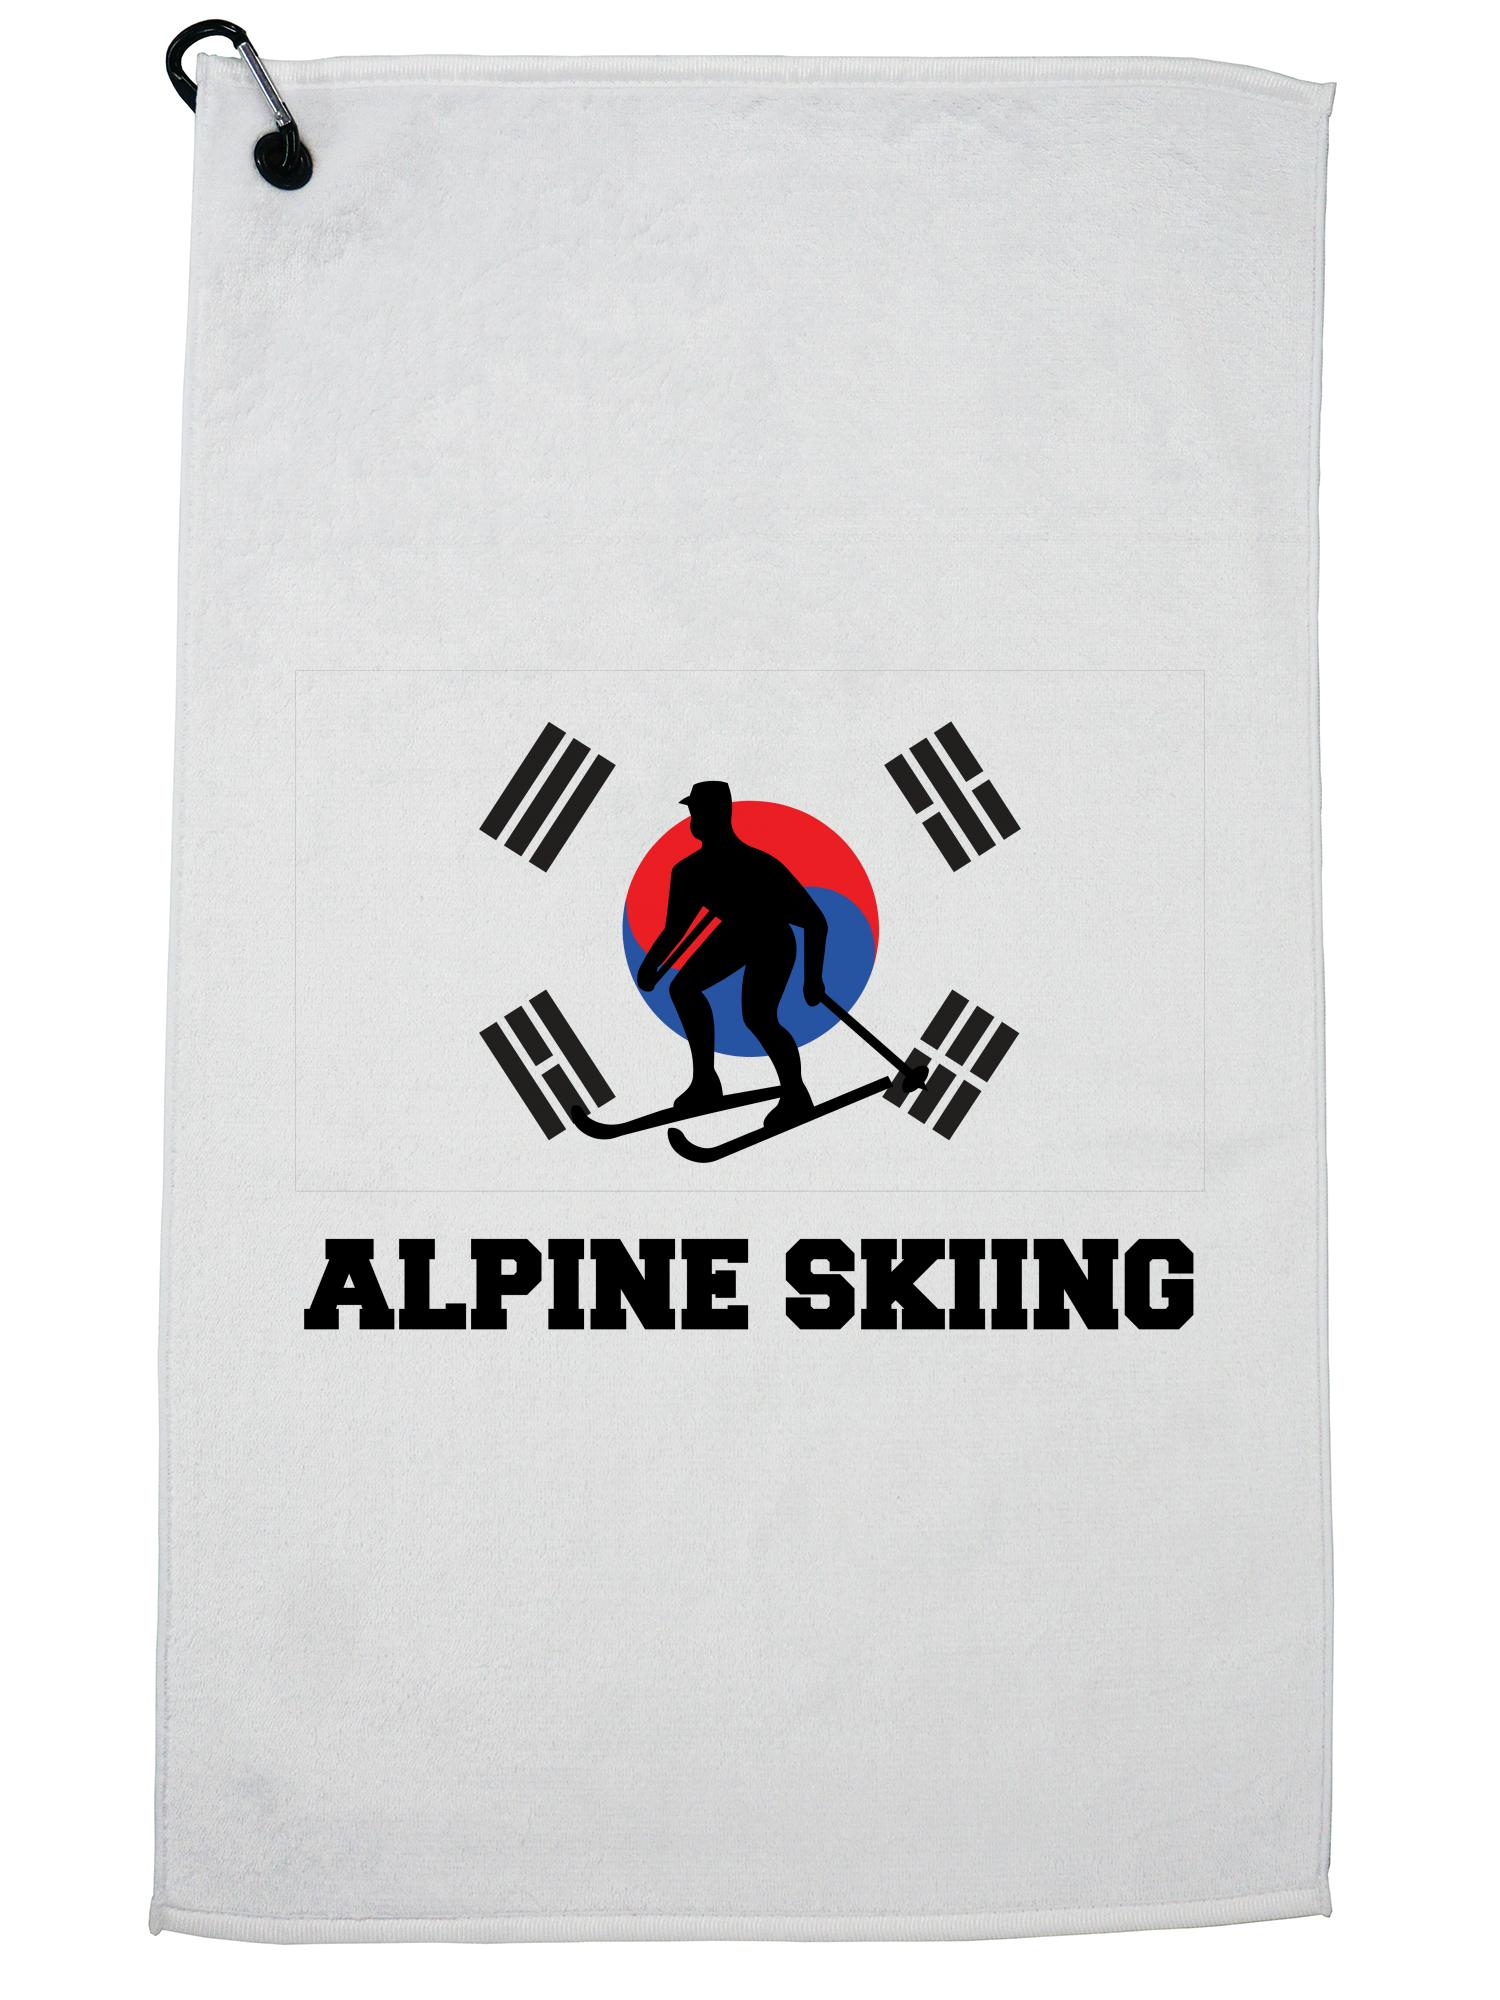 South Korea Olympic Alpine Skiing Flag Silhouette Golf Towel with Carabiner Clip by Hollywood Thread